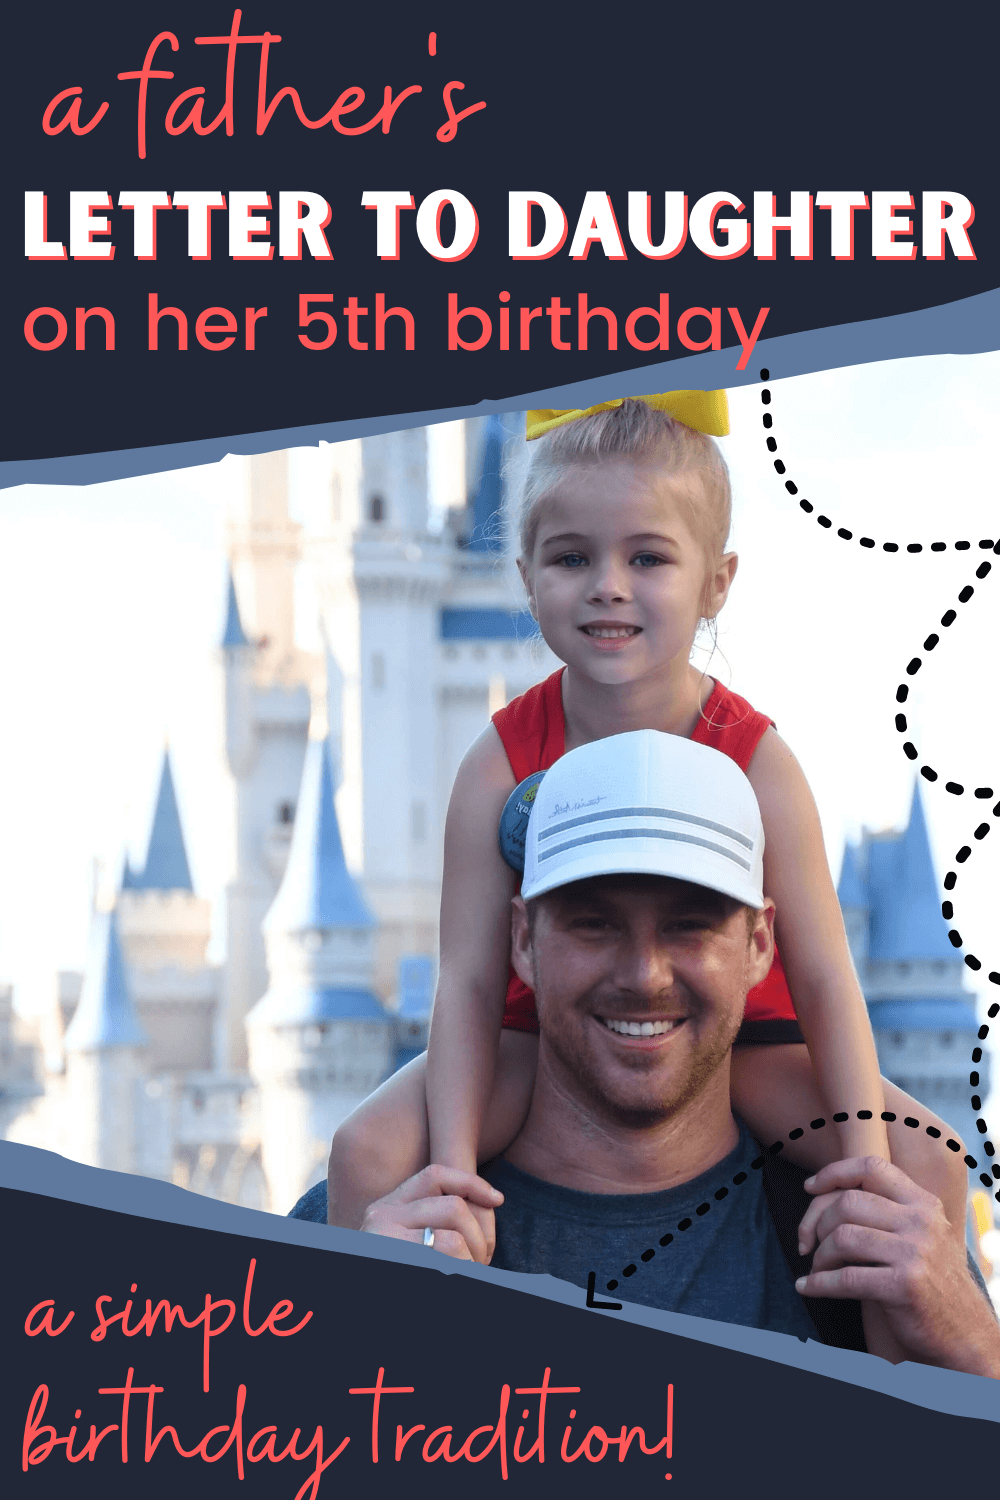 5th birthday letter from dad to daughter